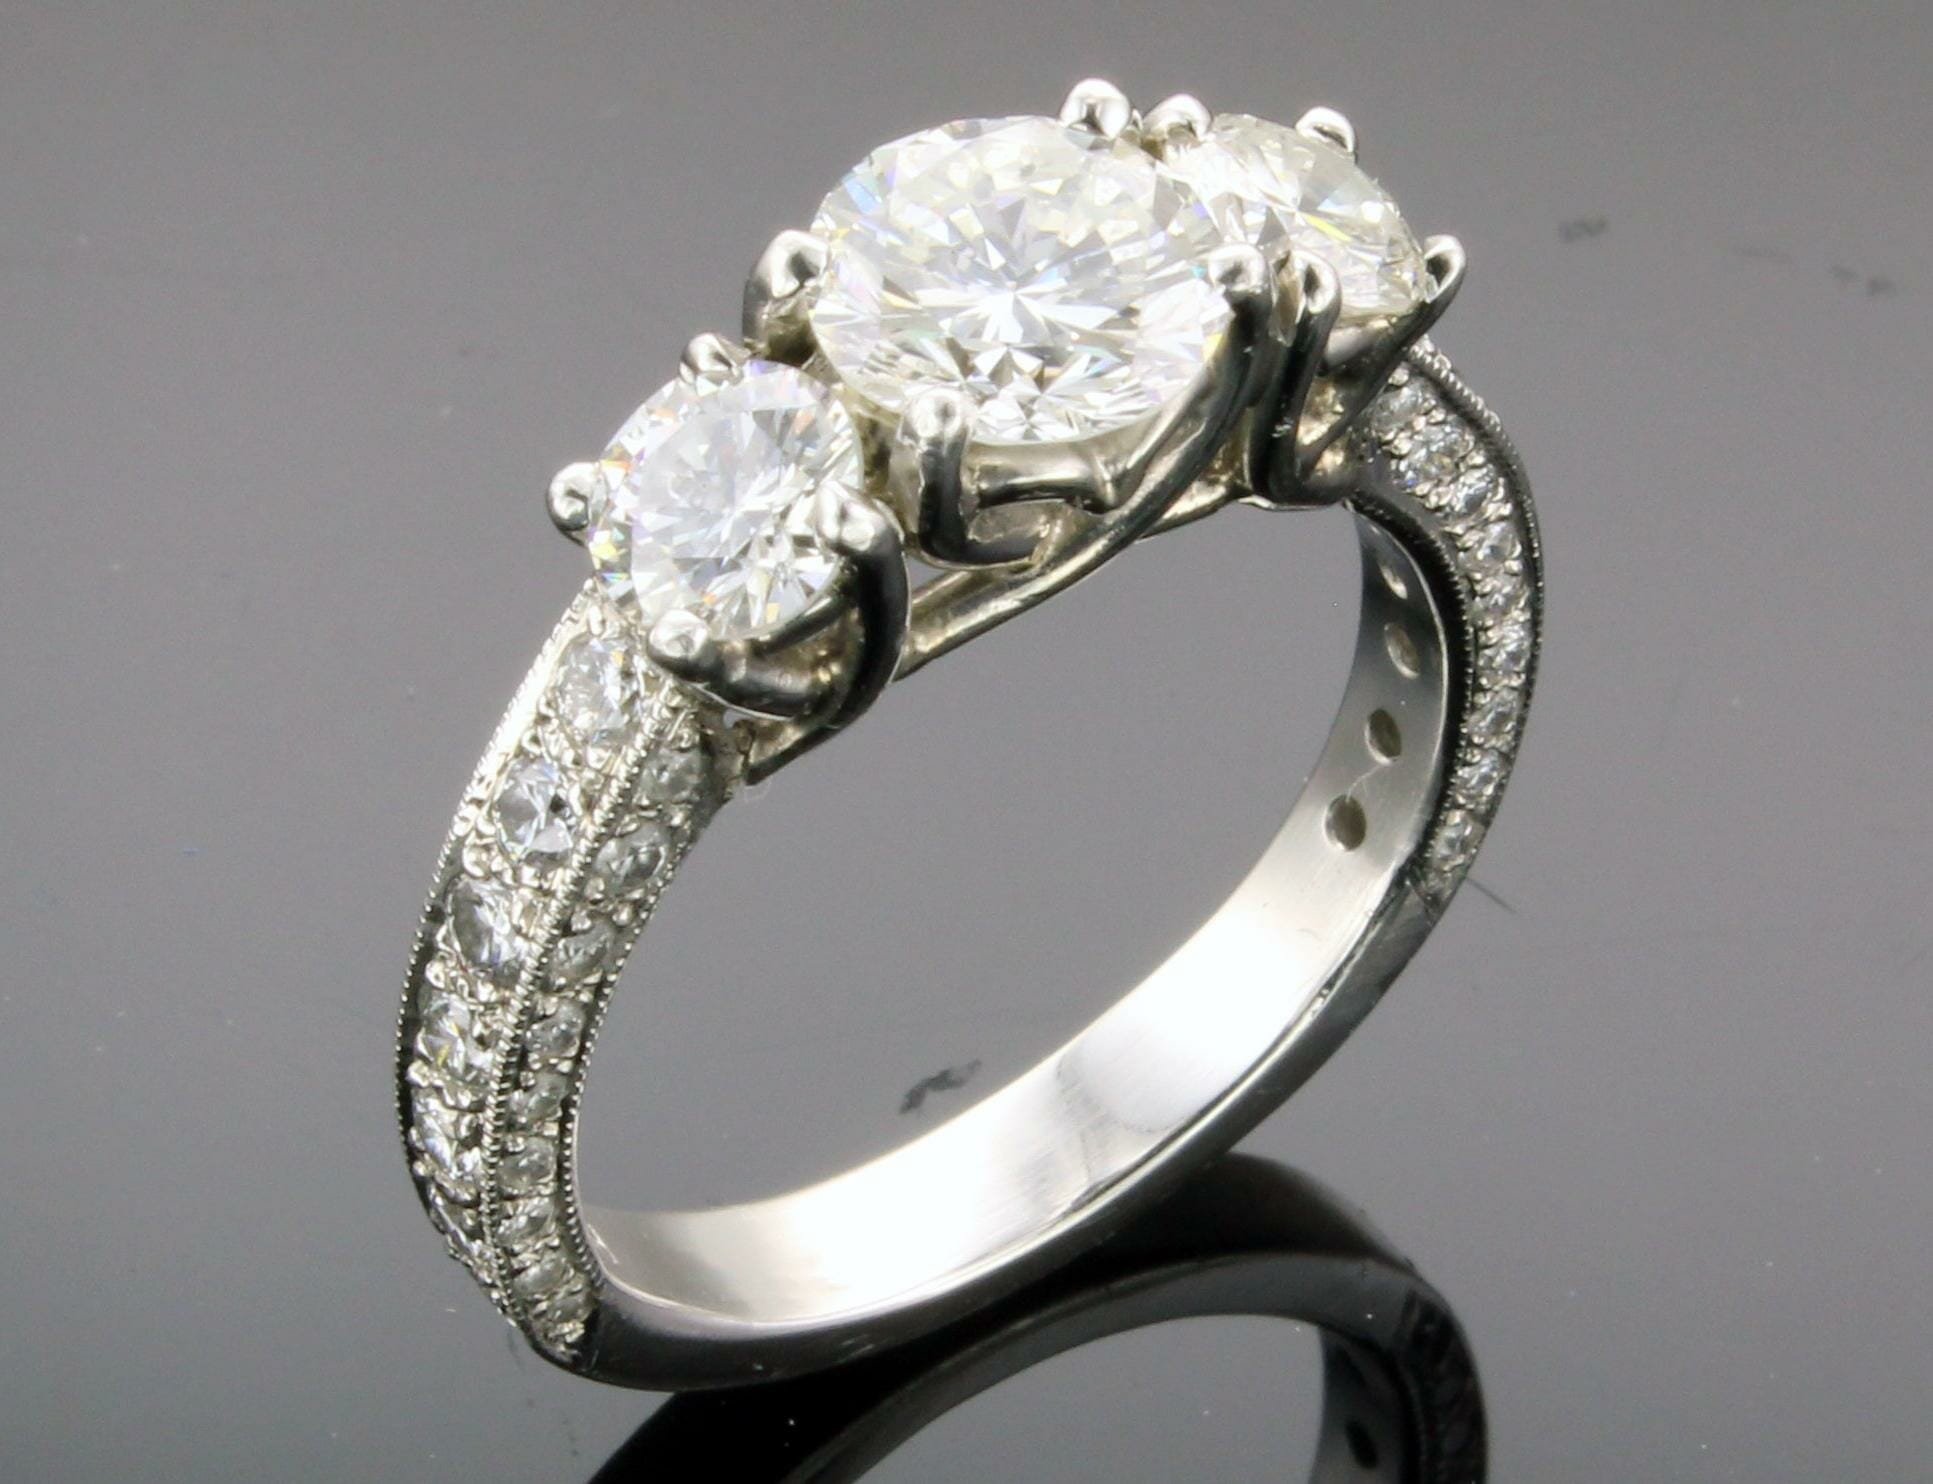 promise wedding diamond three unique ring rings elegant stone jlhkjyc styles